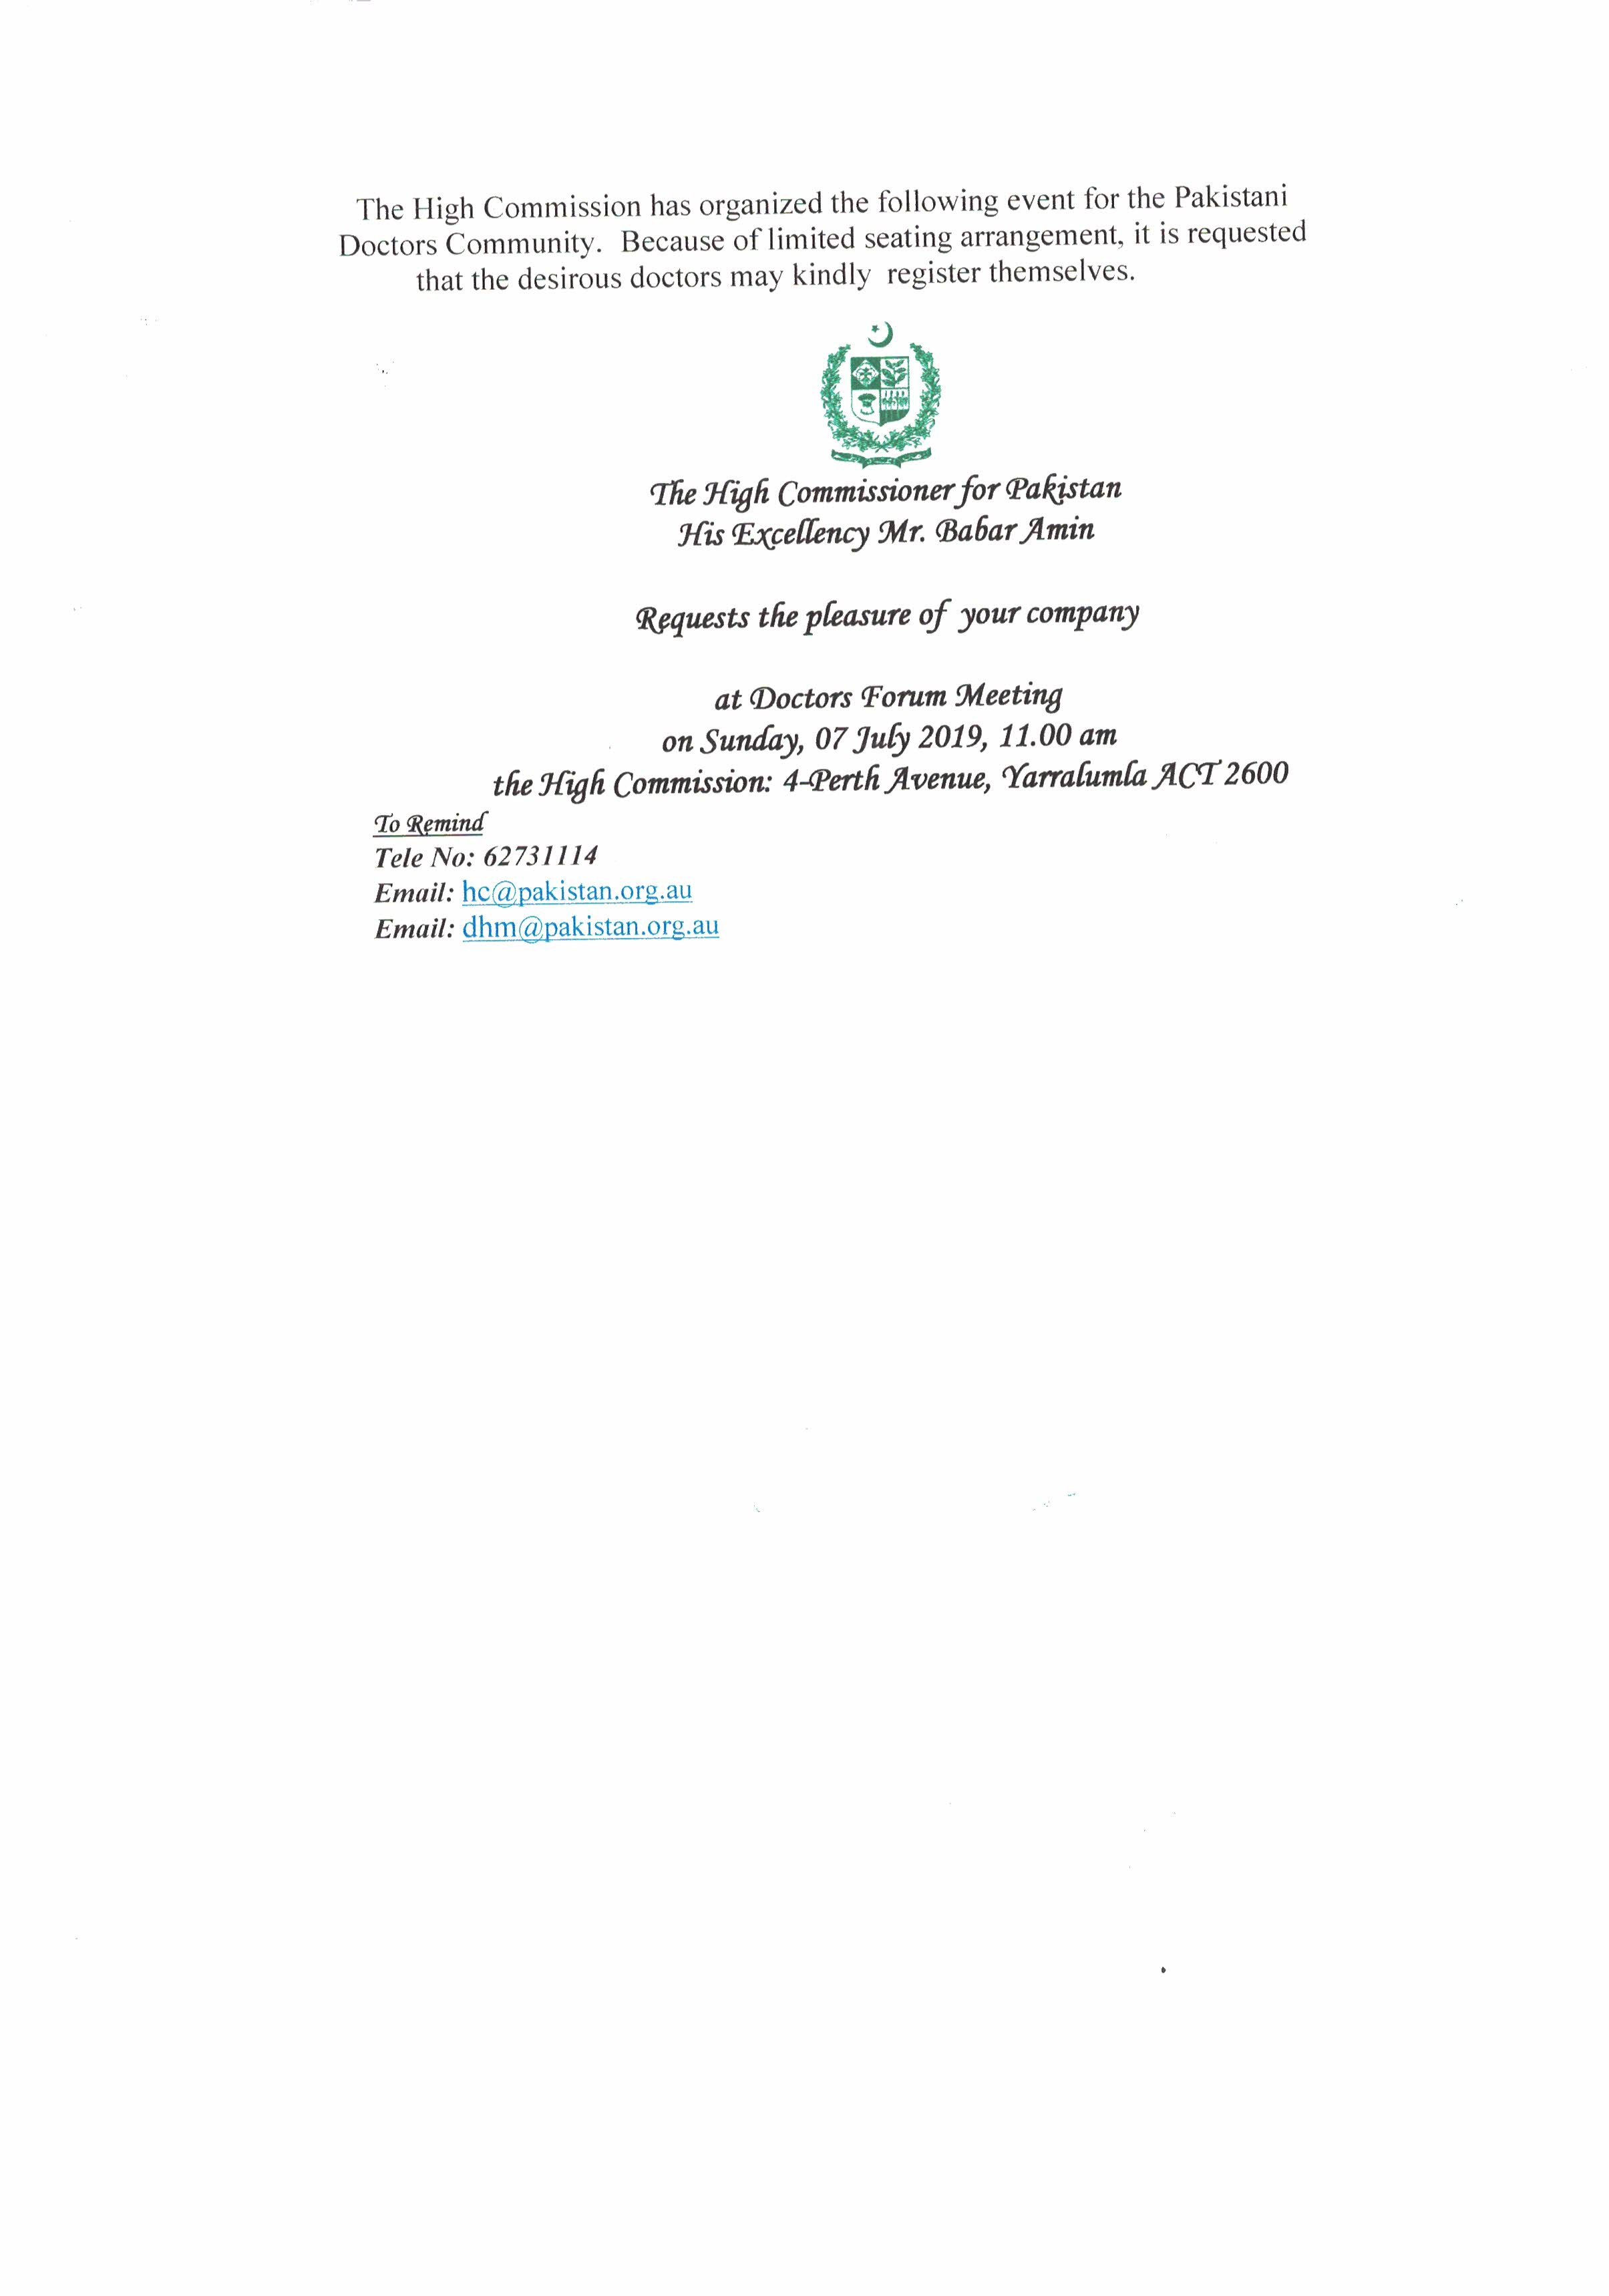 Doctors Forum Meeting – High Commission for Pakistan, Canberra